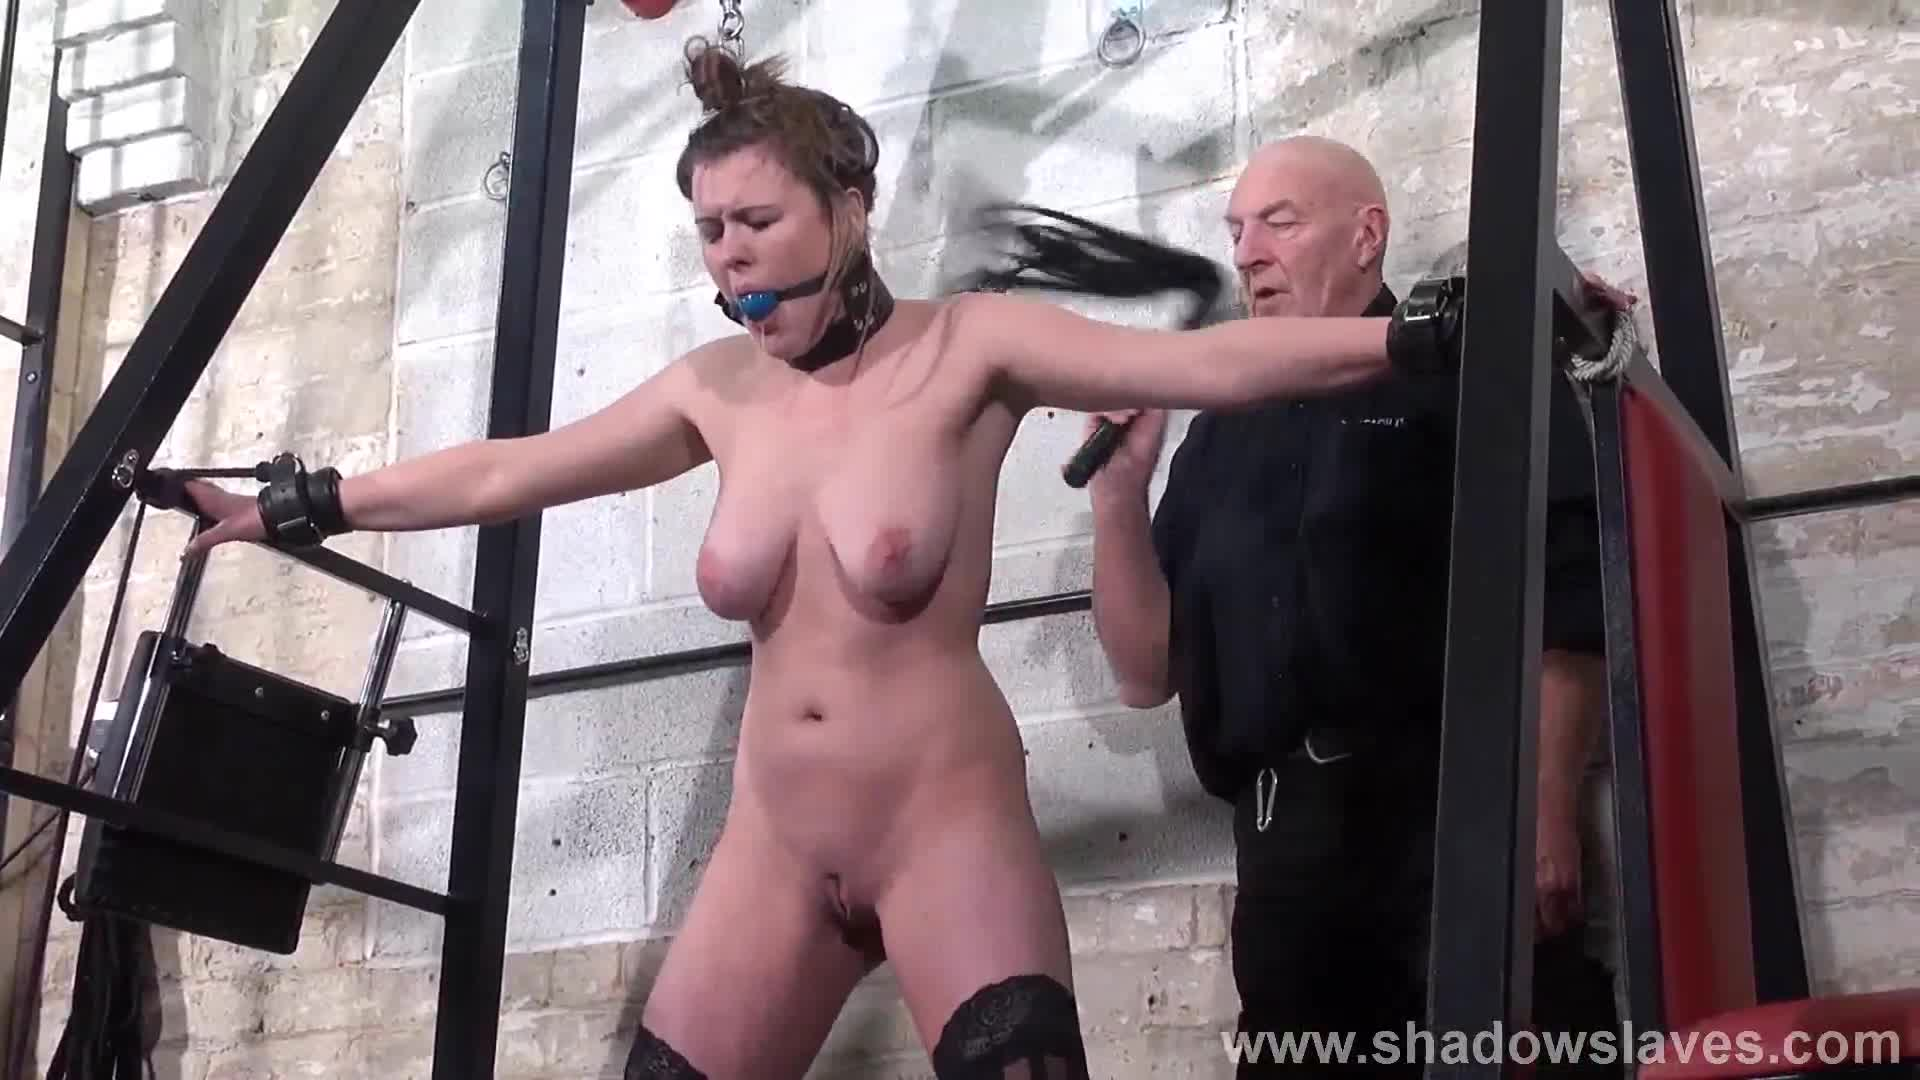 Slave tayolor hearts bound and gagged whipping with blonde 5